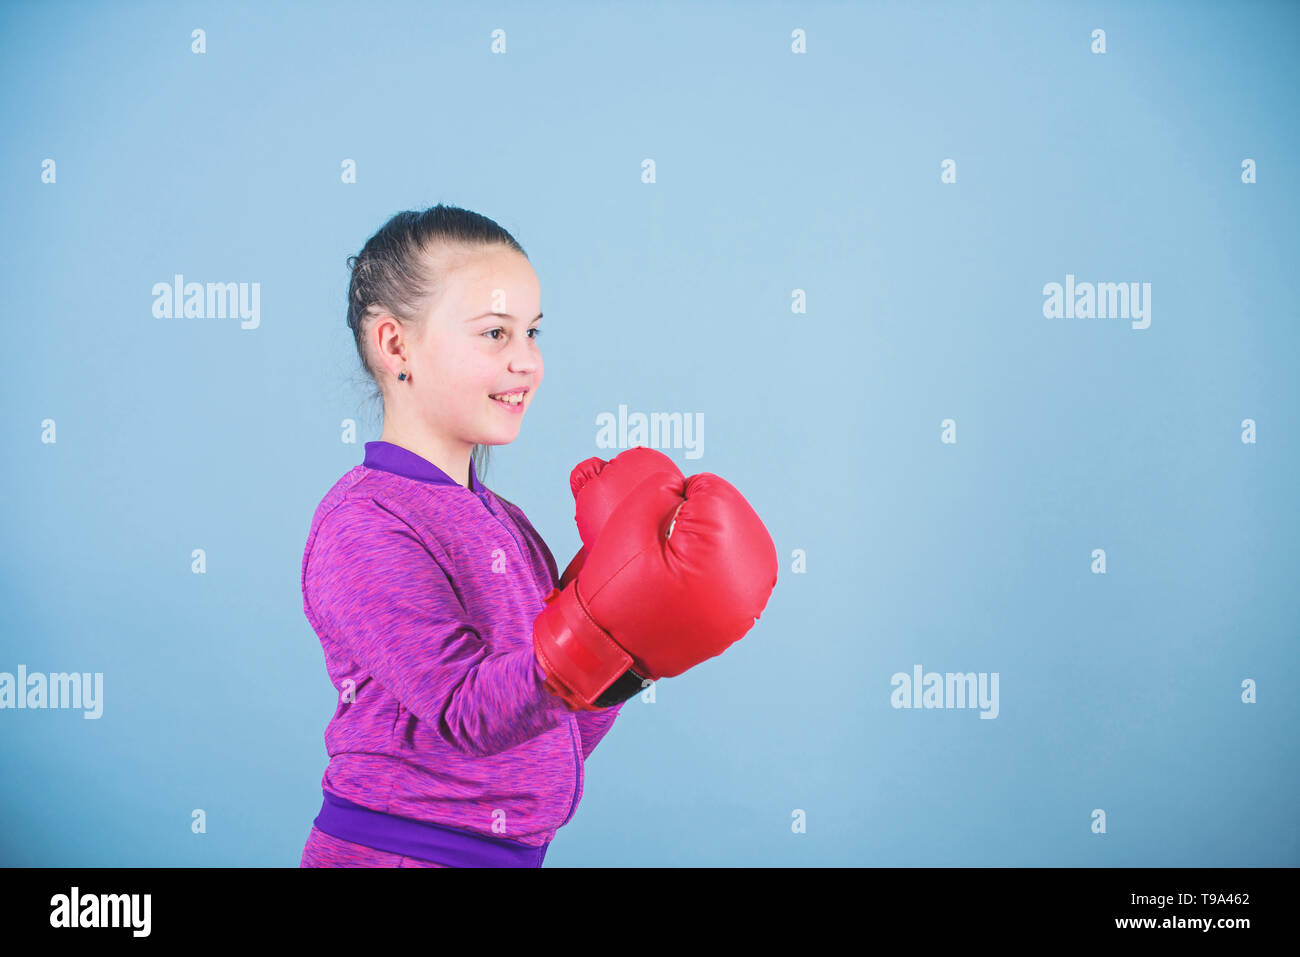 workout of small girl boxer. Sport success. sportswear fashion. Fitness diet. energy health. Happy child sportsman in boxing gloves. punching knockout. Childhood activity. Sporty beauty. - Stock Image